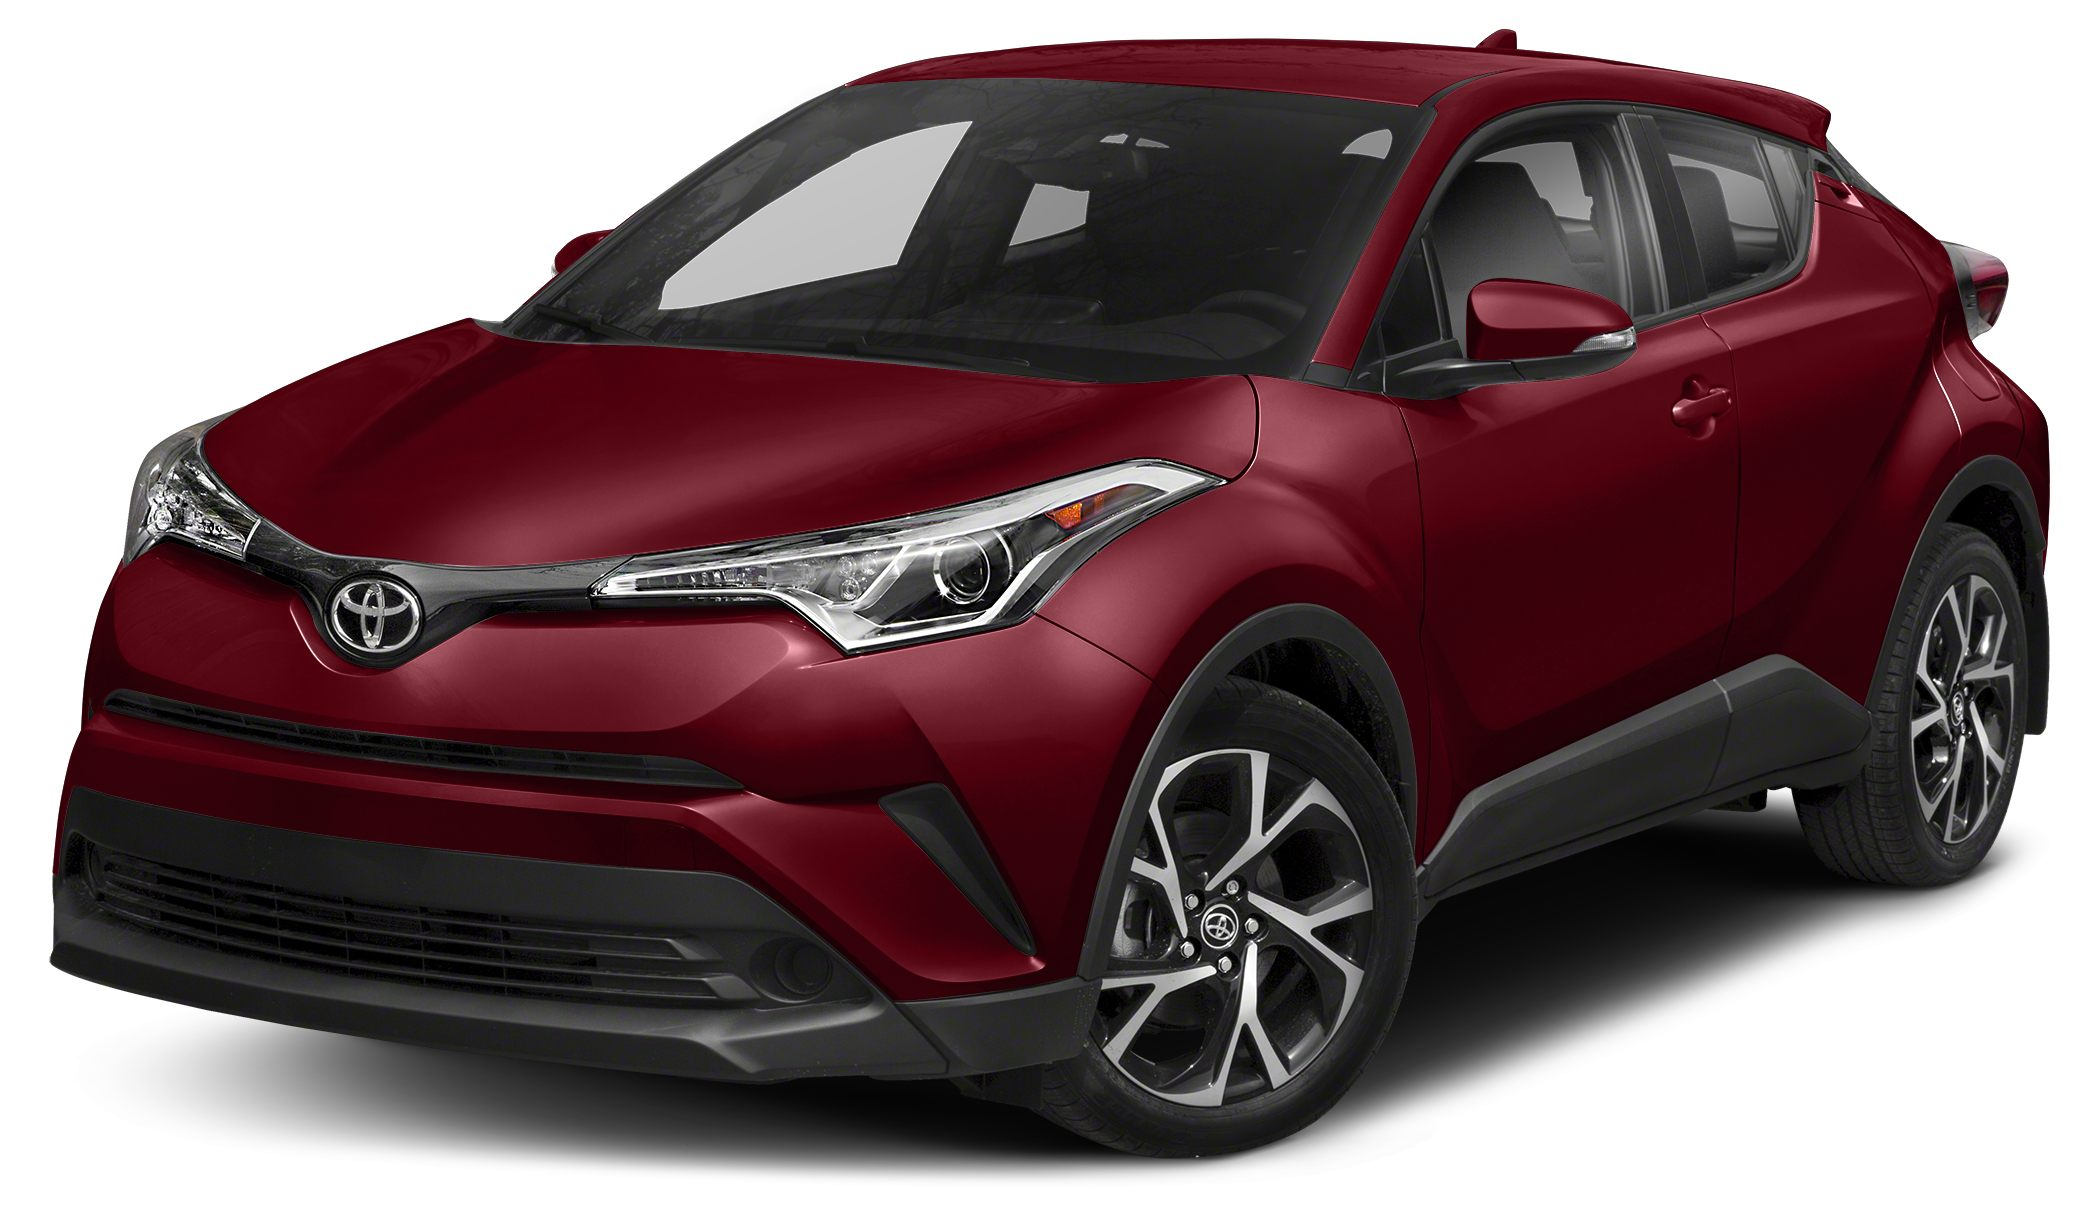 2018 Toyota C-HR XLE Westboro Toyota is proud to present HASSLE FREE BUYING EXPERIENCE with upfron